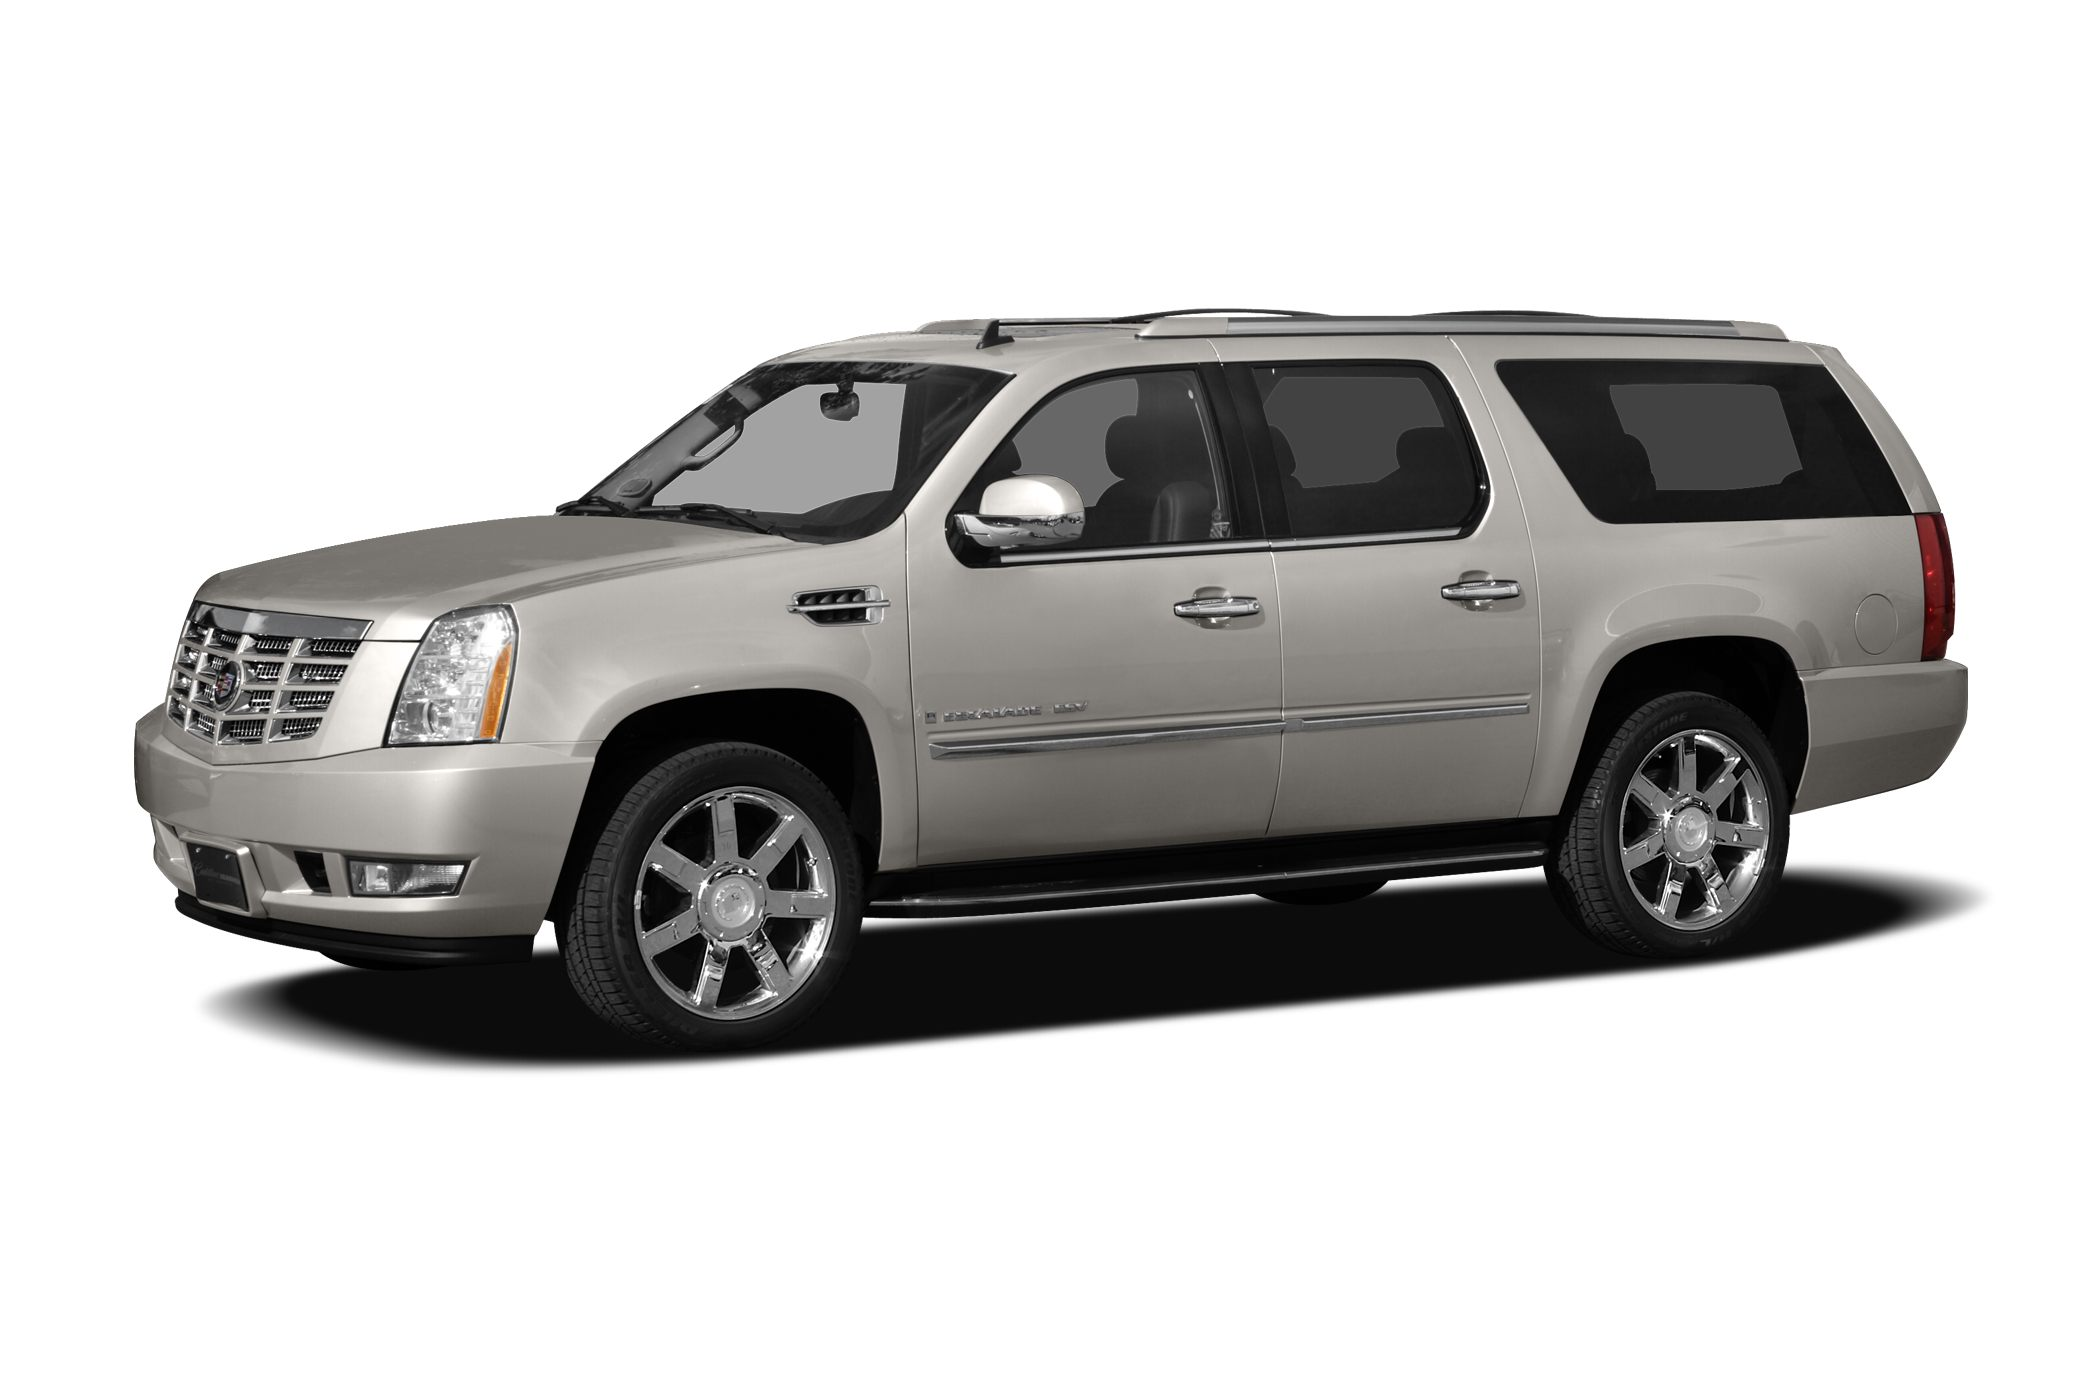 2007 Cadillac Escalade ESV SUV for sale in Stockton for $35,999 with 57,631 miles.